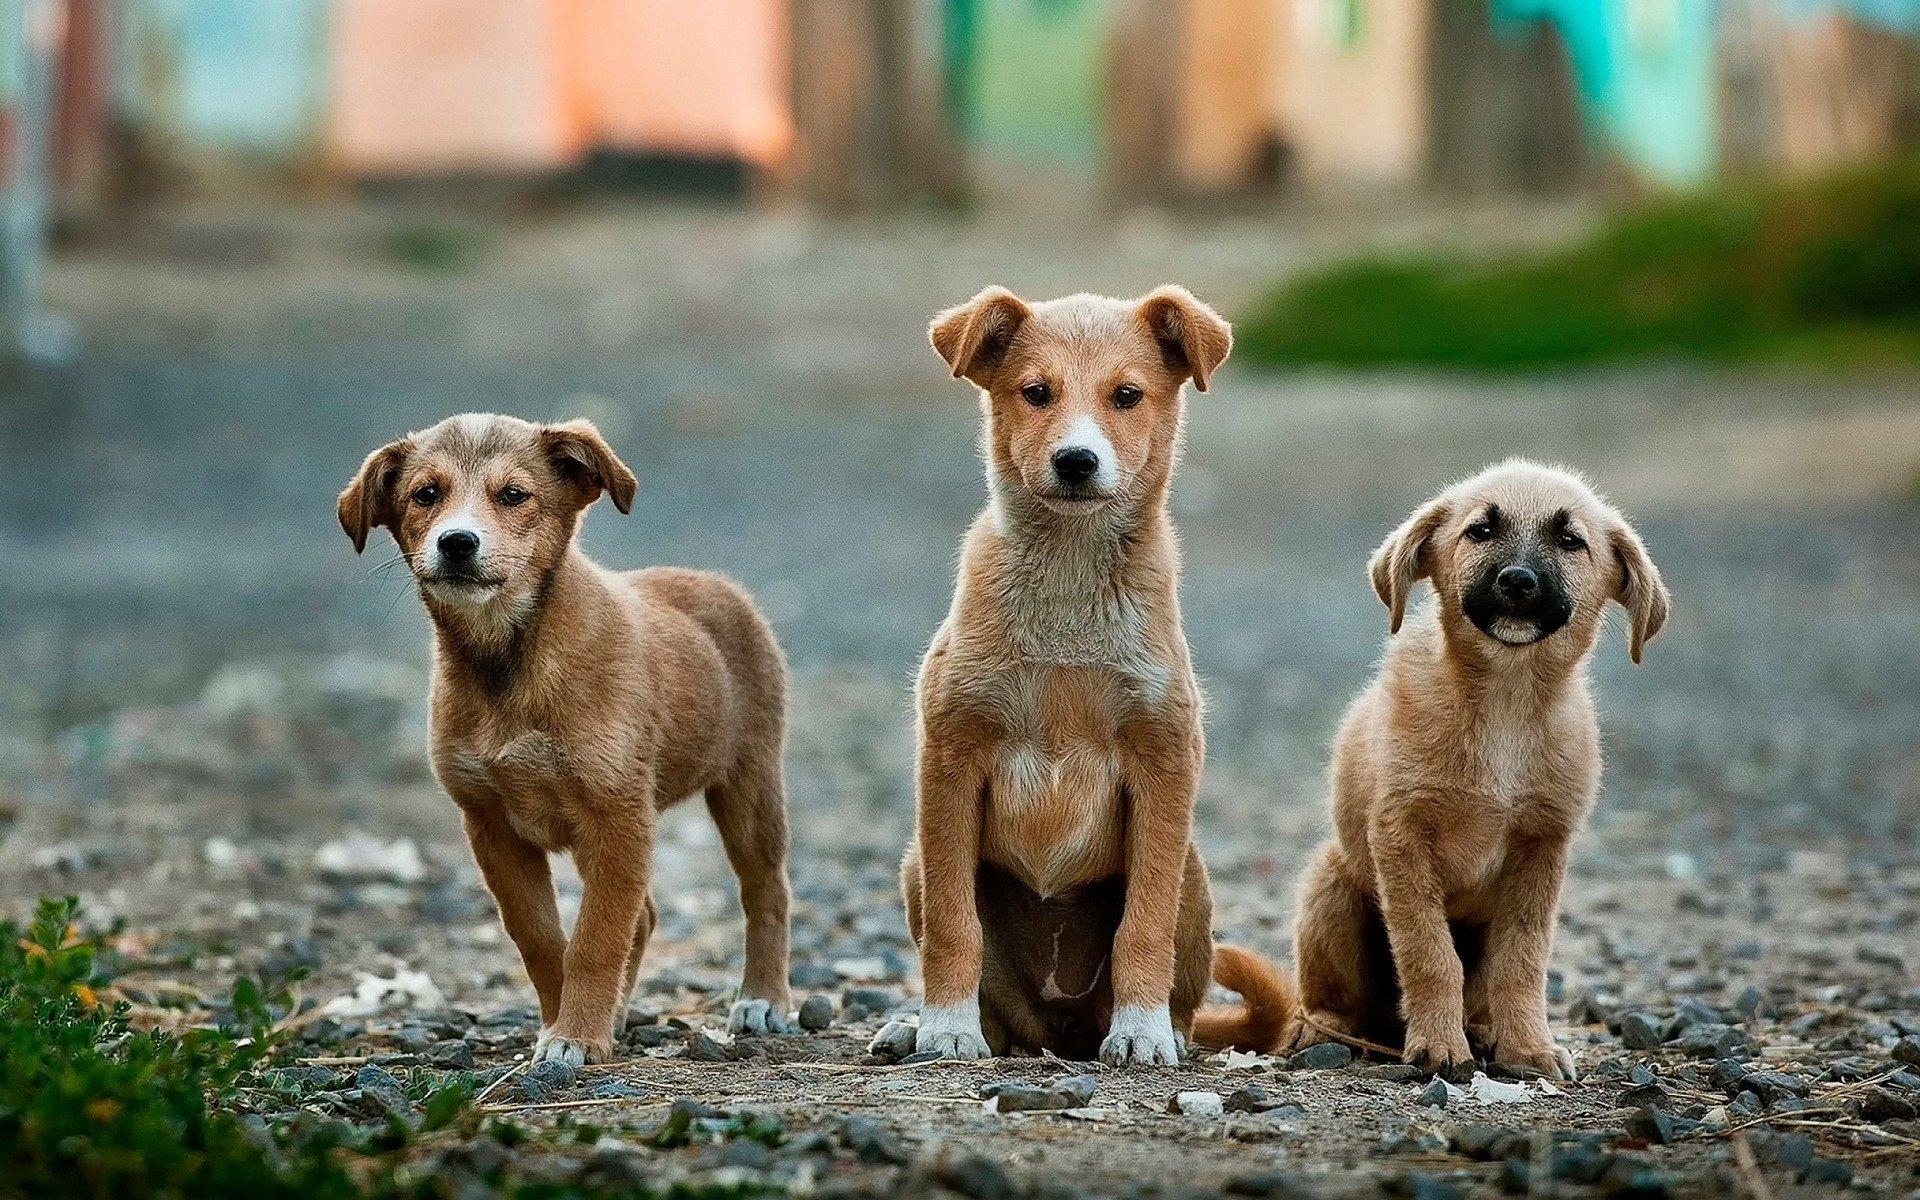 Feral dogs can carry rabies